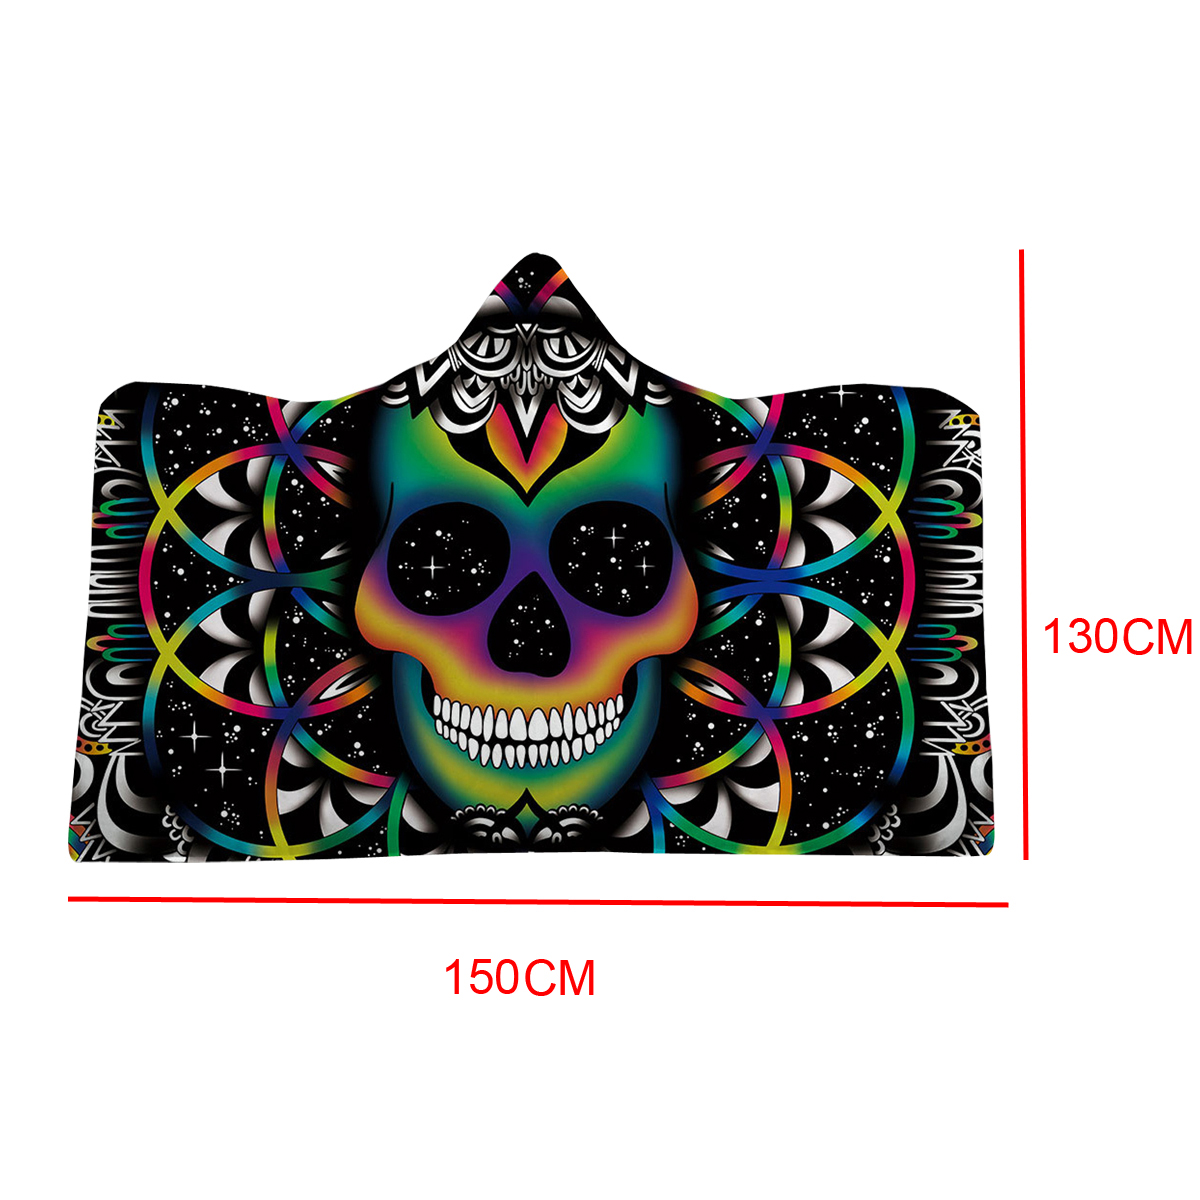 130x150cm 3D Digital Printing The Skeleton Wearable Hooded Blanket Thickened Double Plush Blankets